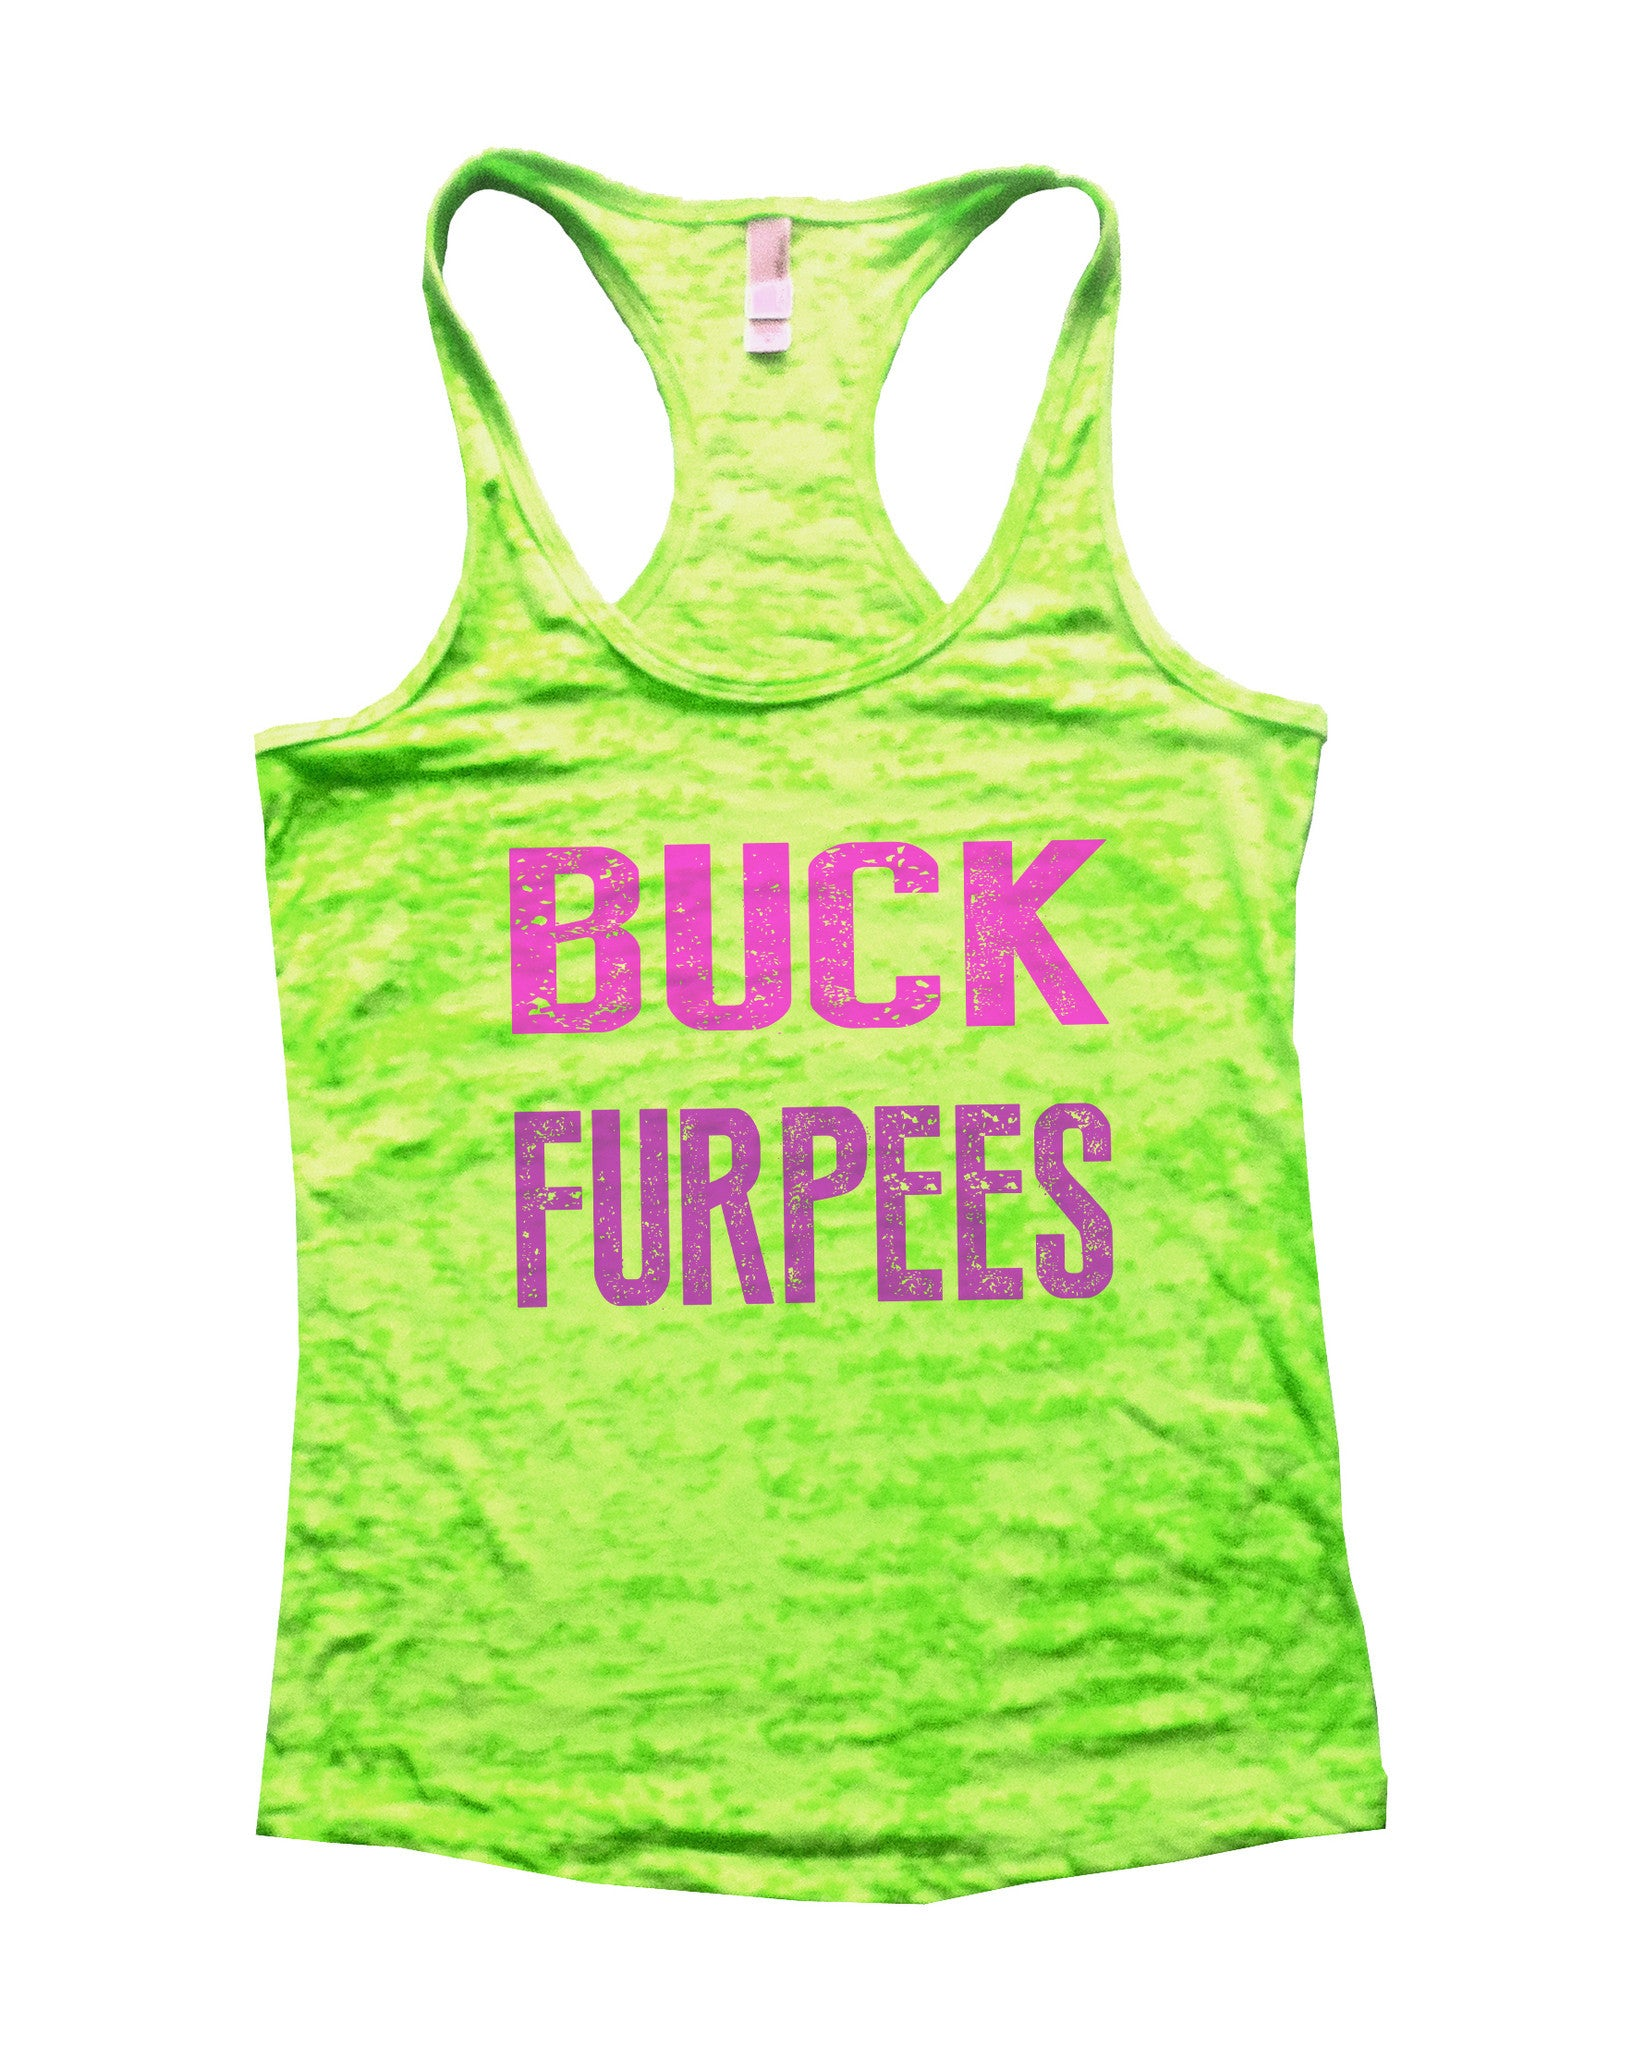 Buck Furpees Burnout Tank Top By BurnoutTankTops.com - 562 - Funny Shirts Tank Tops Burnouts and Triblends  - 3